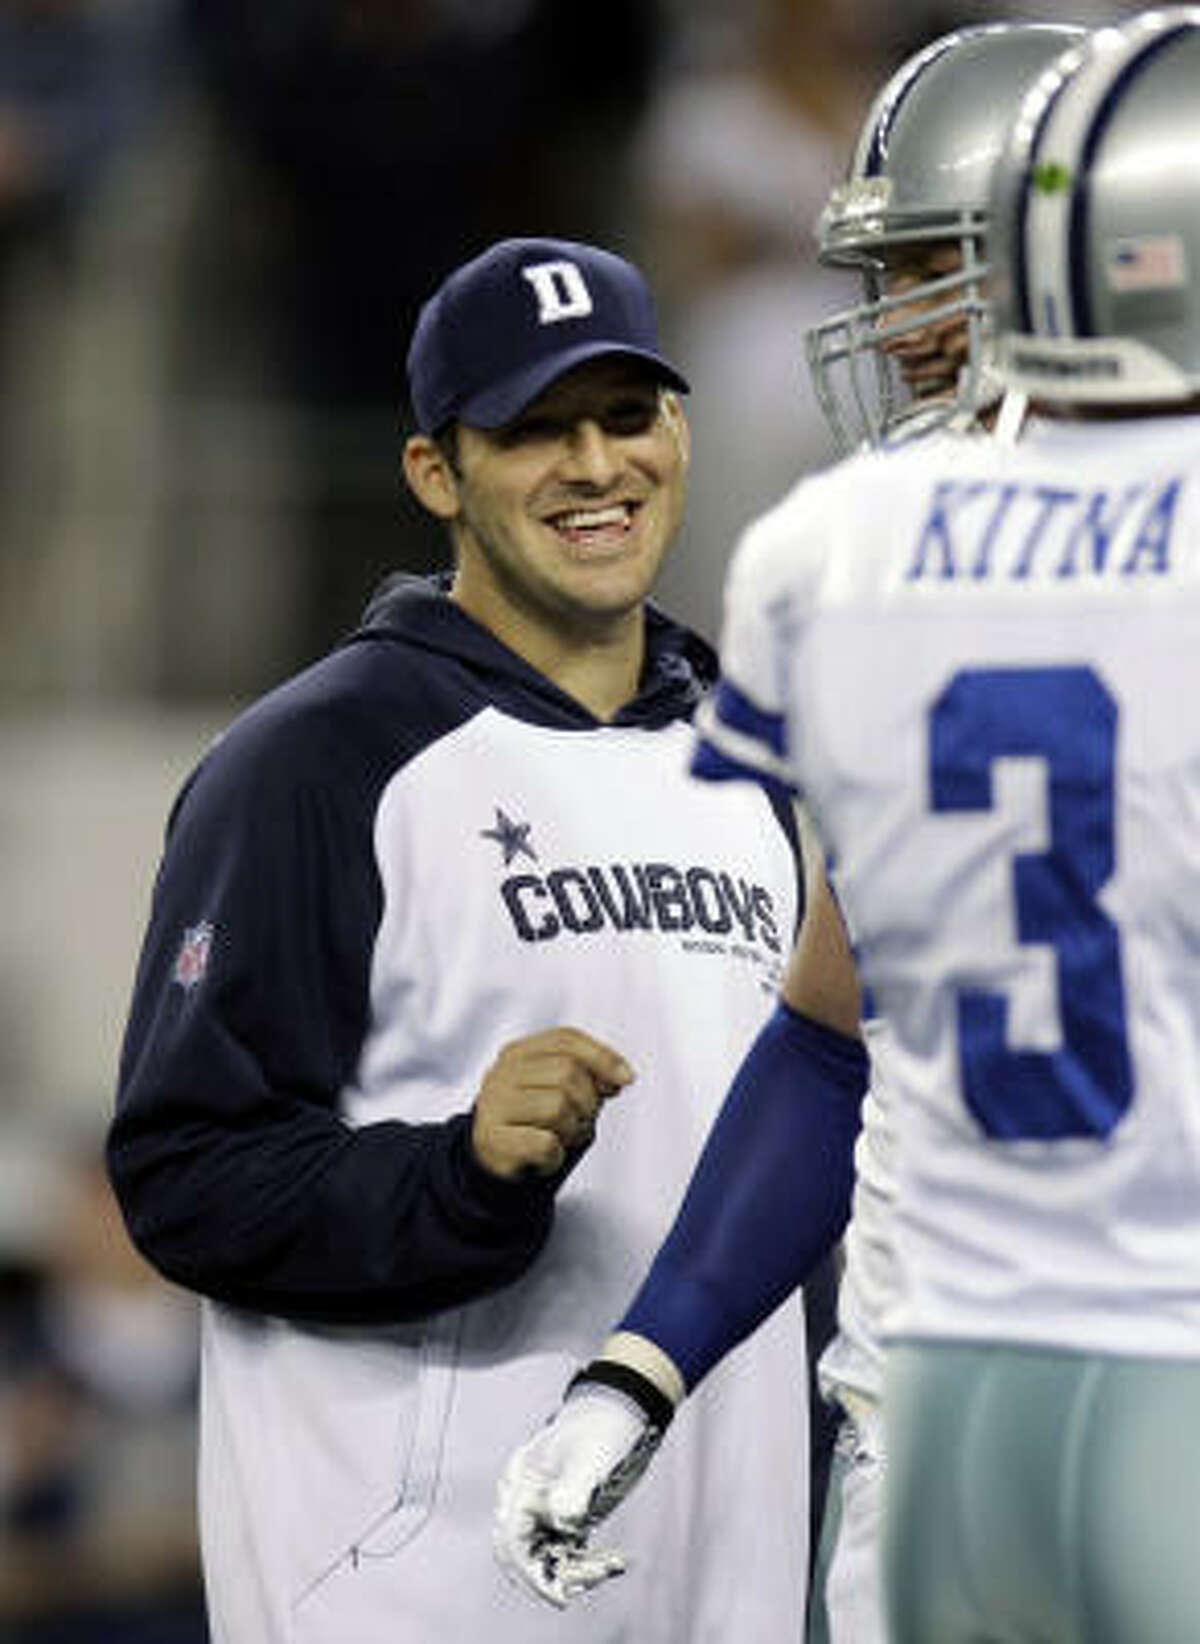 Tony Romo, left, completed 69 percent of his passes for 1,605 yards with 11 touchdowns this season.